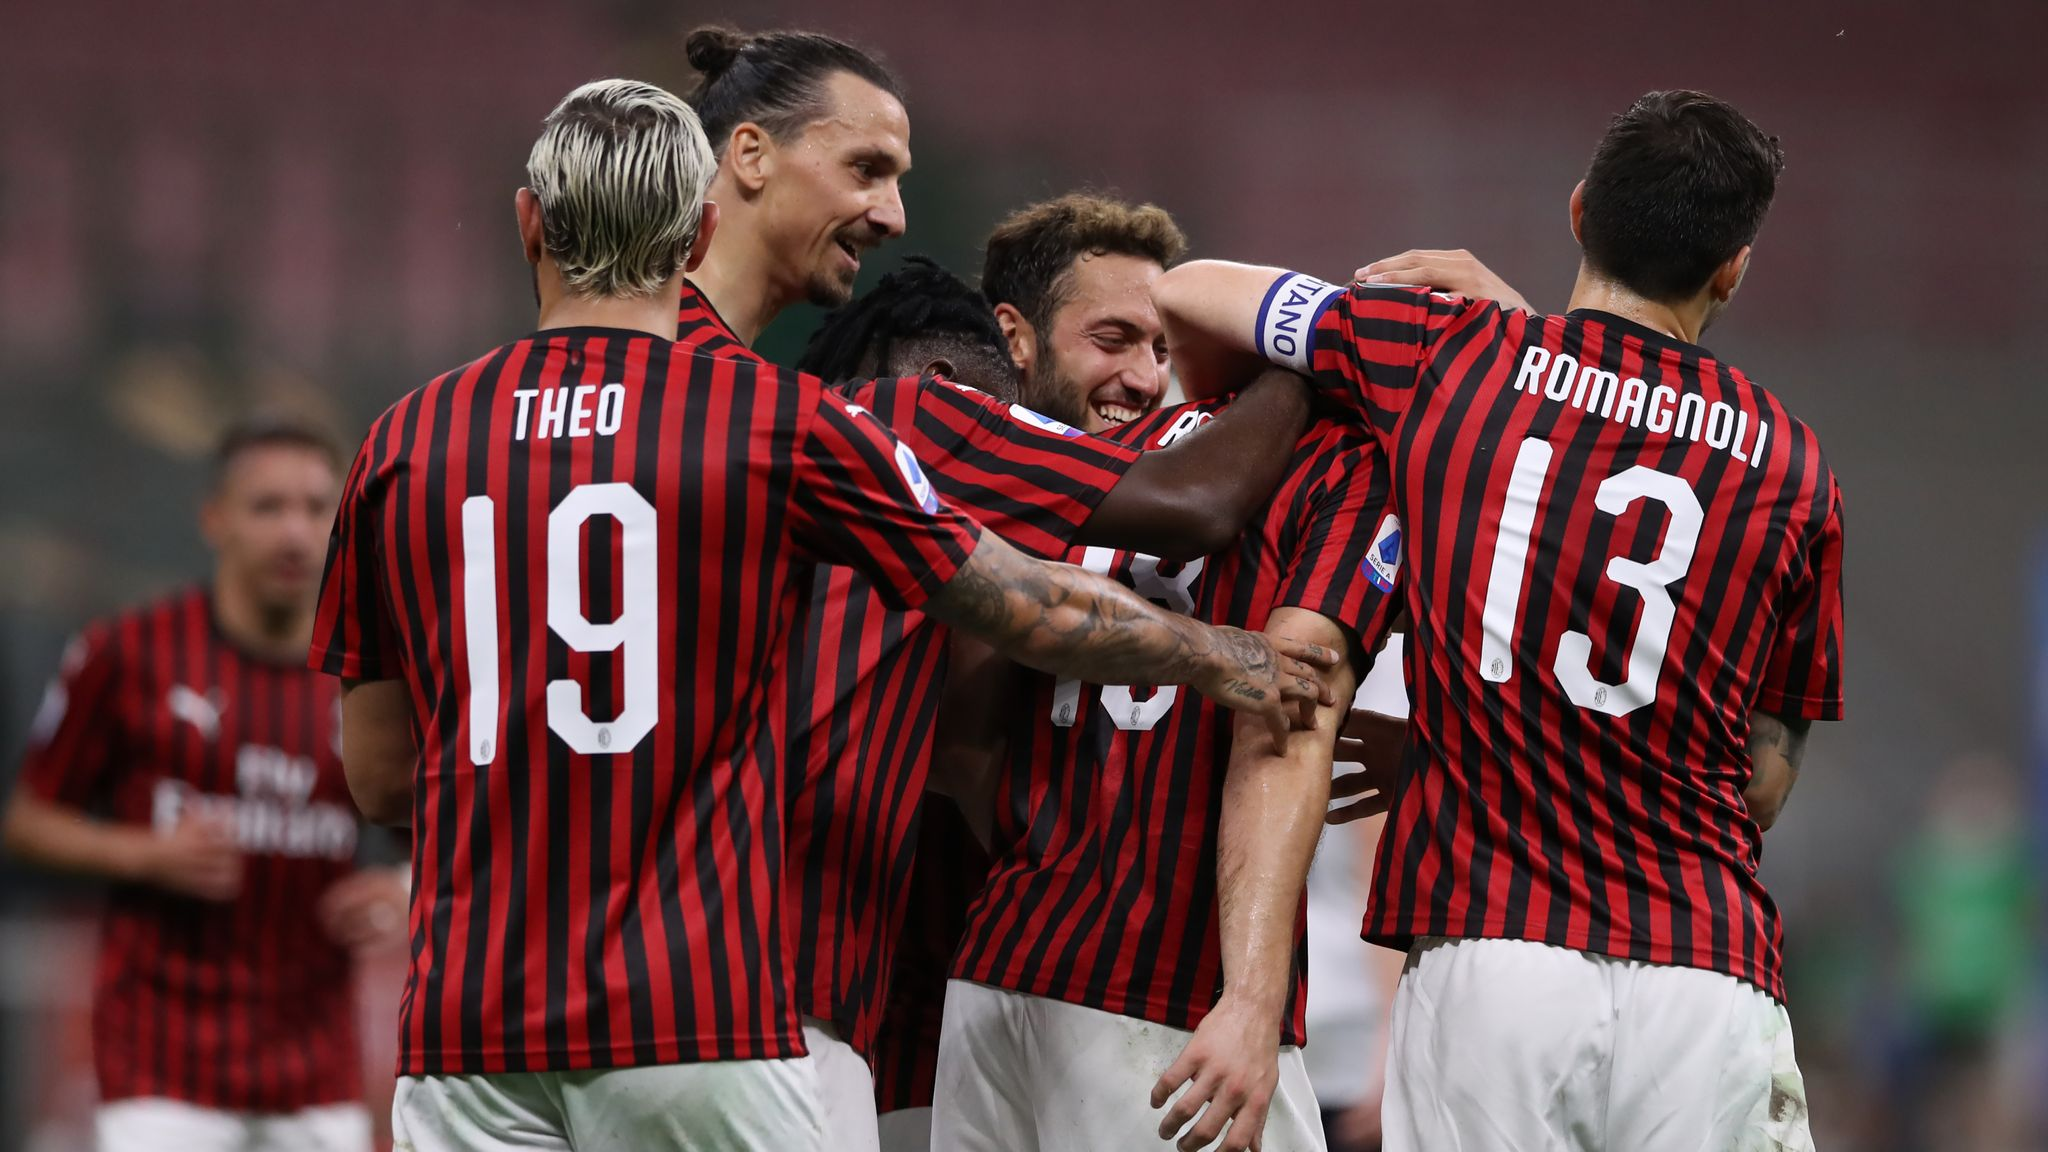 Calcio Returns: 2020/21 Italian Serie A Preview - Newslibre